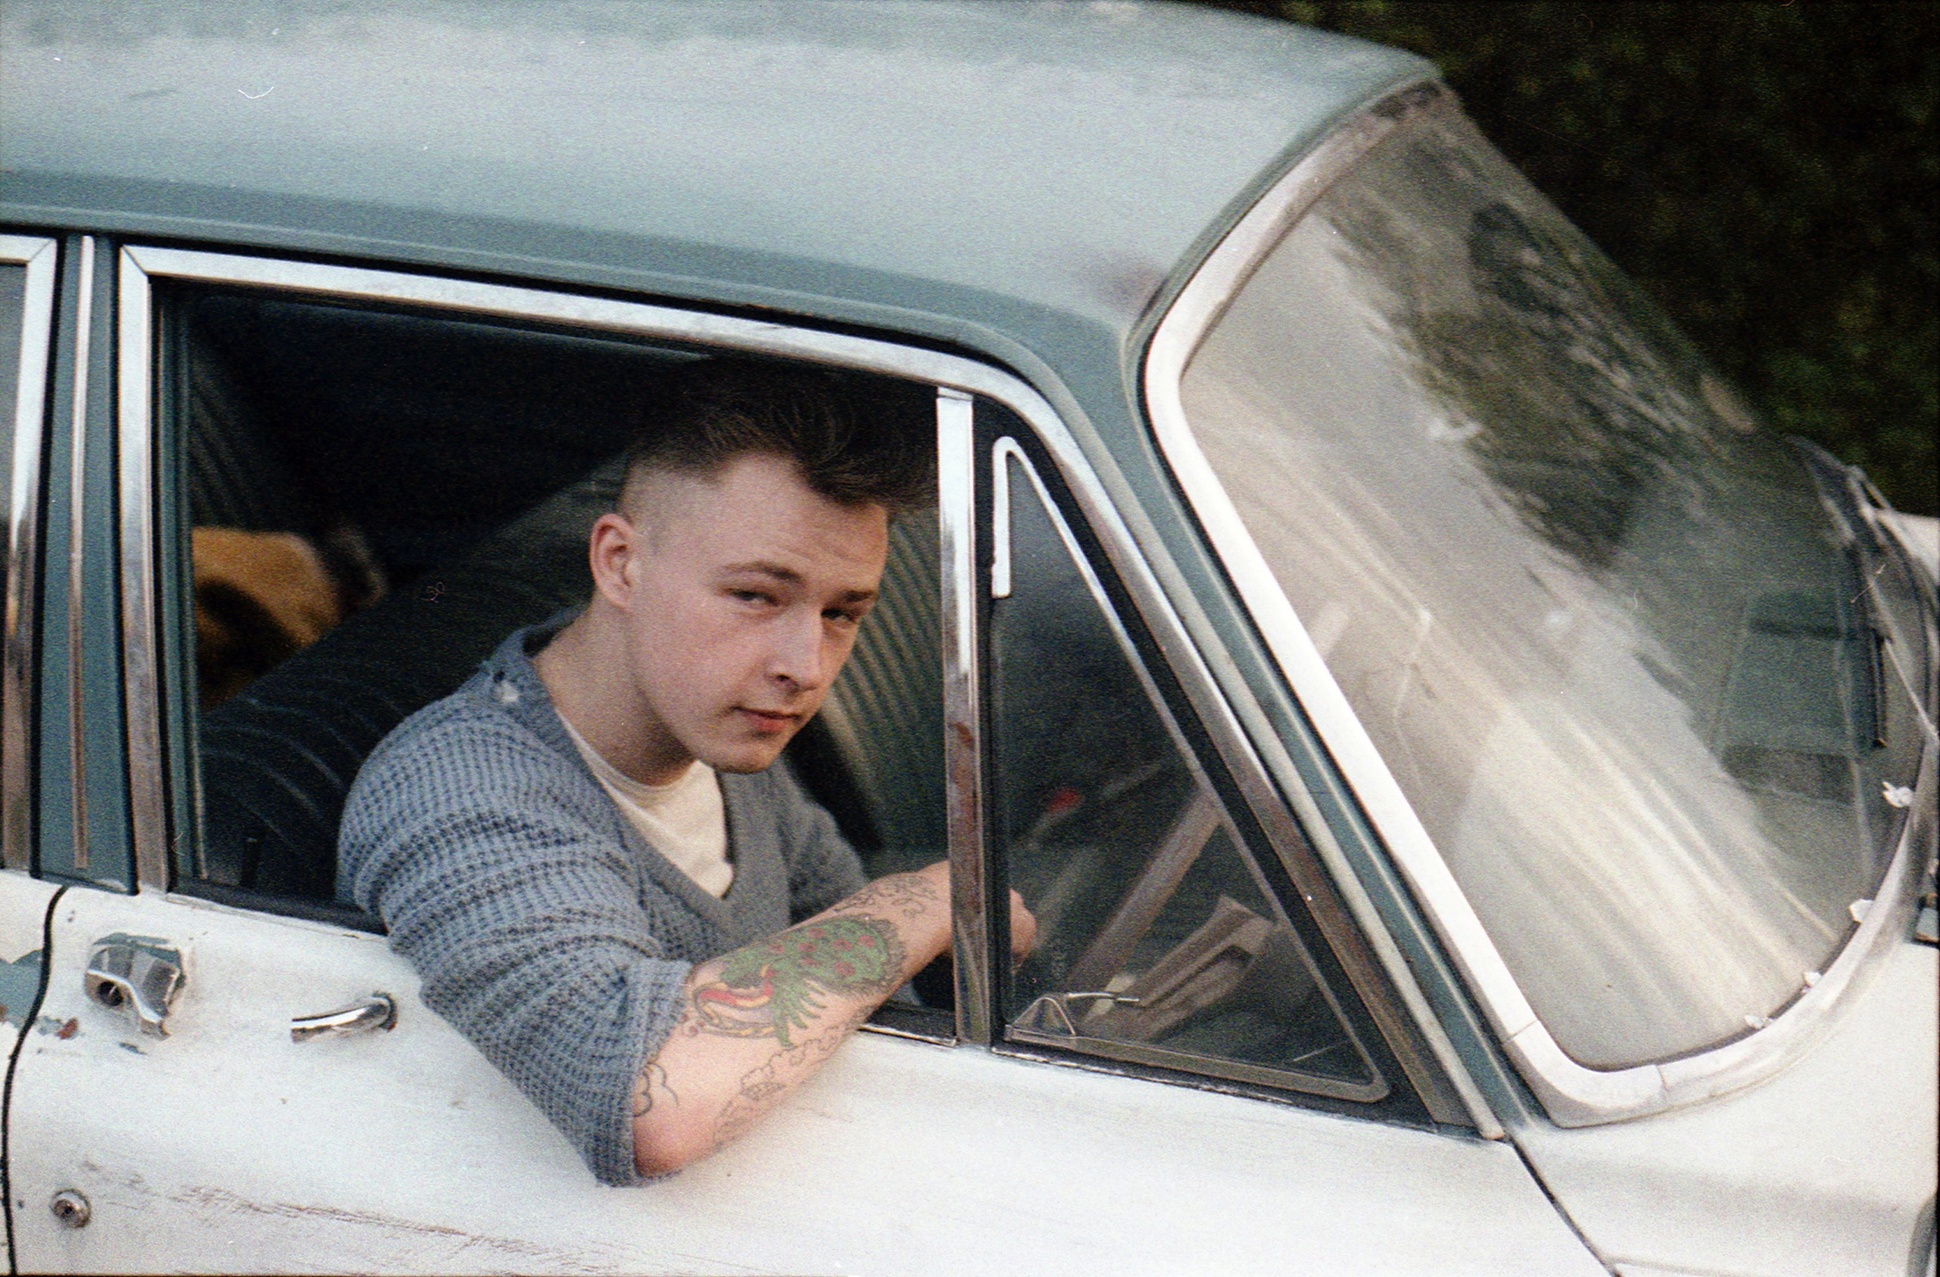 Rockabilly with traditional style tattoos on his arm in his car, High Wycombe, 1980s by Gavin Watson